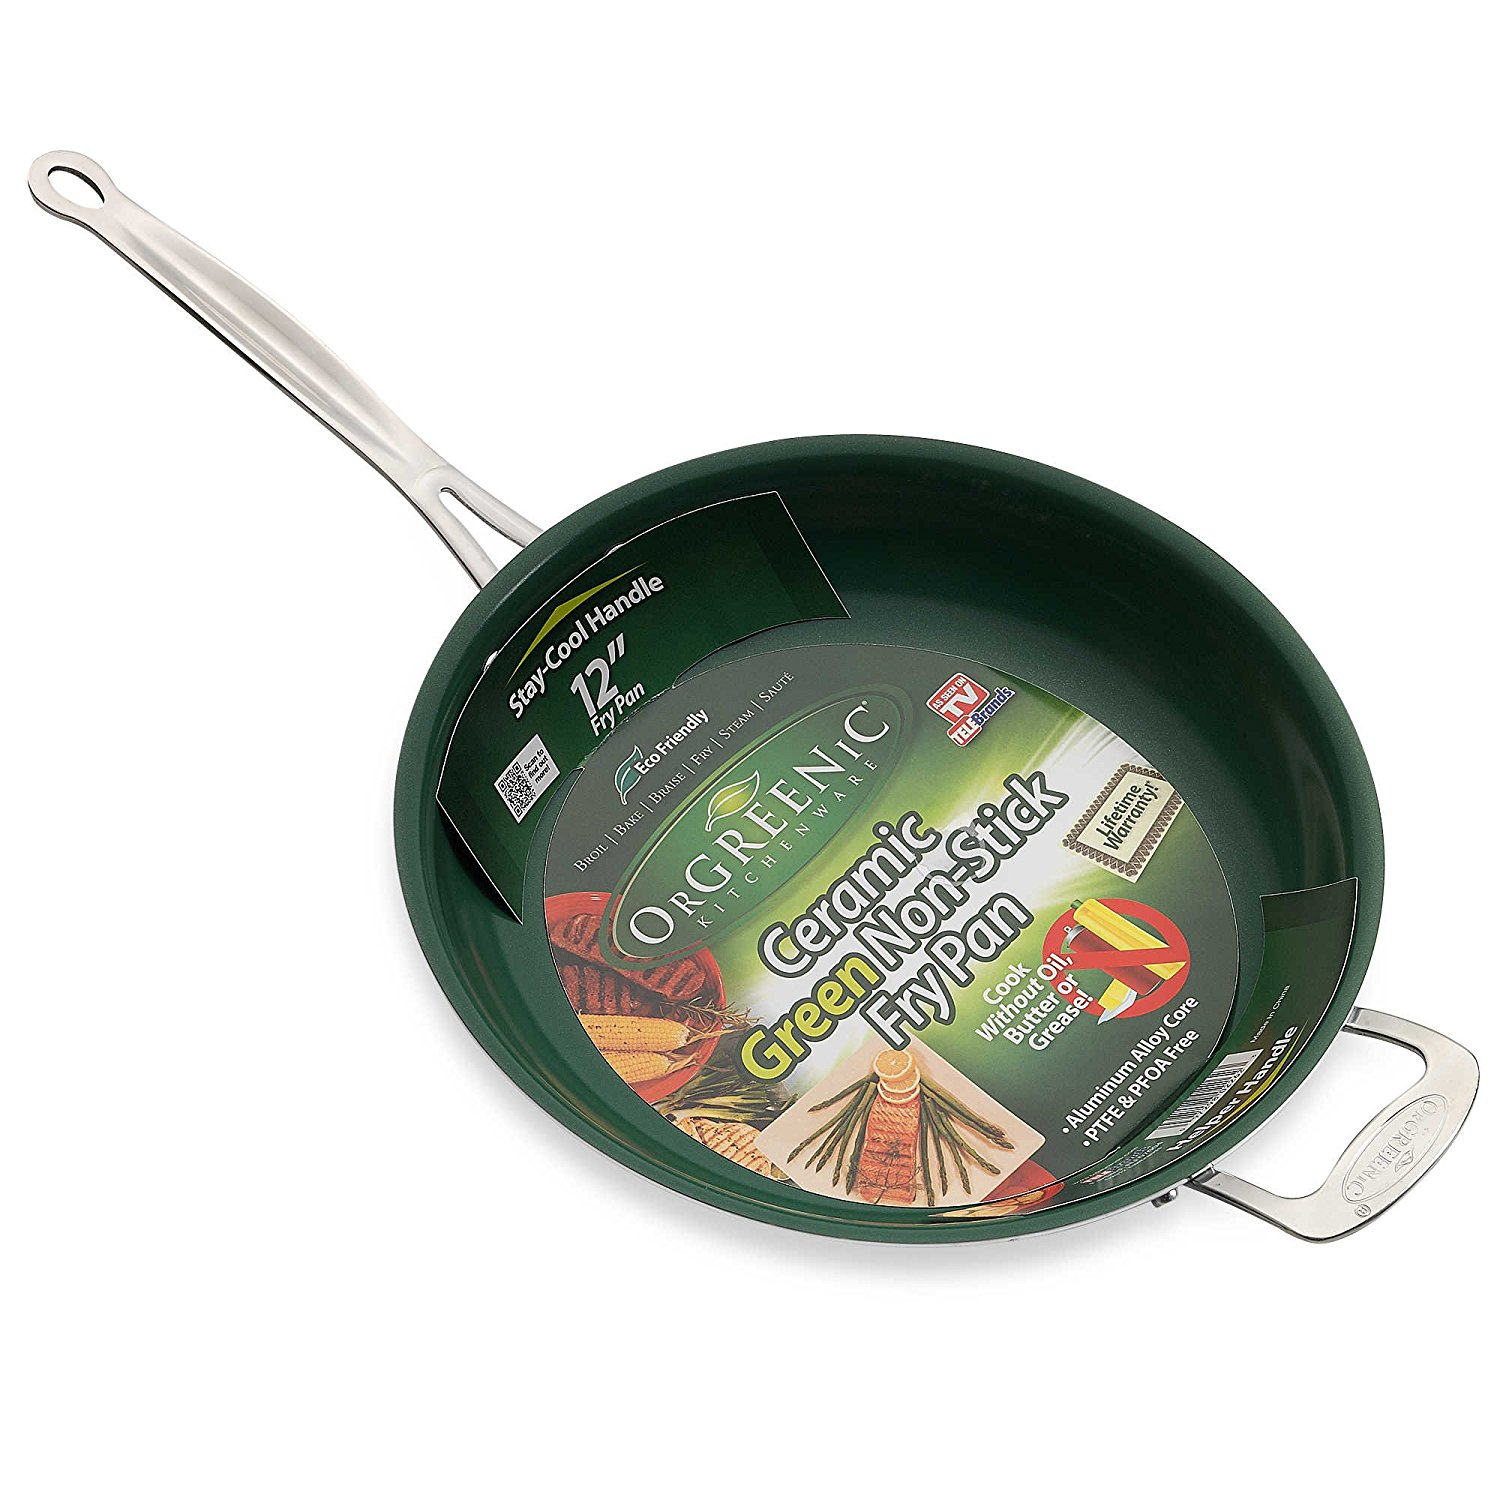 Orgreenic 12'' Non Stick Ceramic Frying Pan With Helper Handle as Seen On TV, This Orgreenic Ceramic Green Non Stick Frying Pan is designed to let you.., By Telebrands